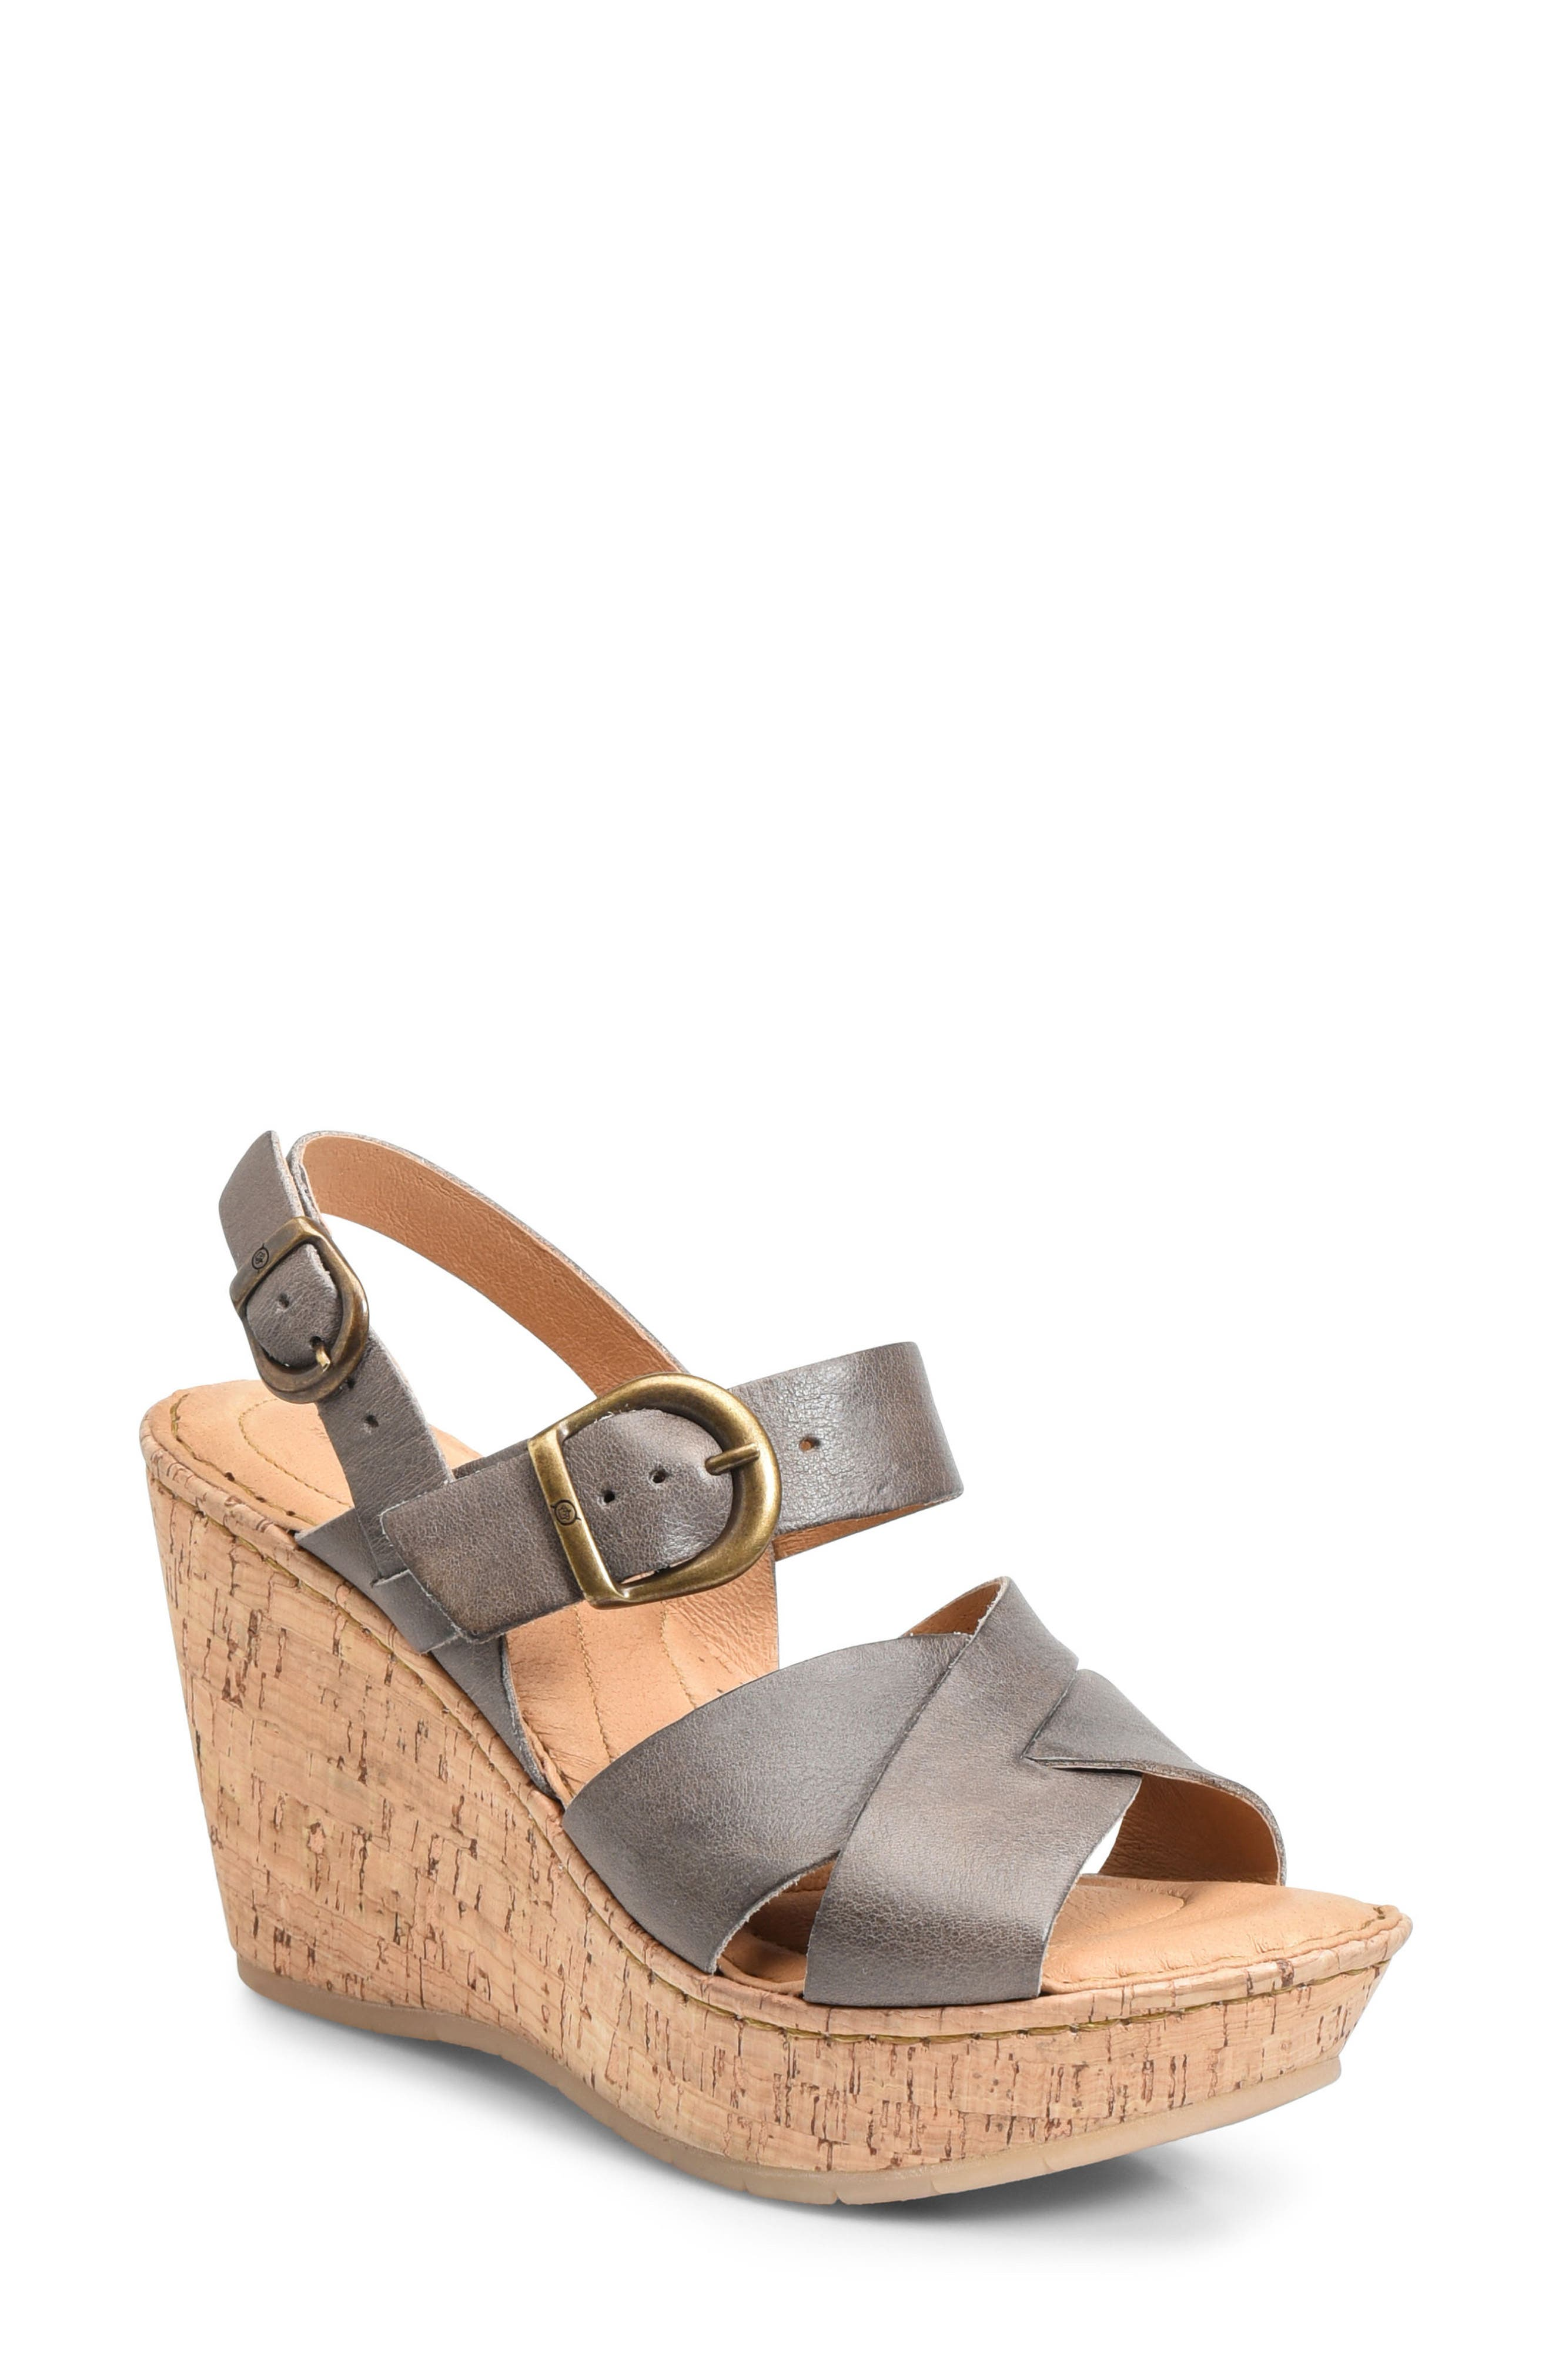 Emmy Platform Wedge,                             Main thumbnail 1, color,                             020